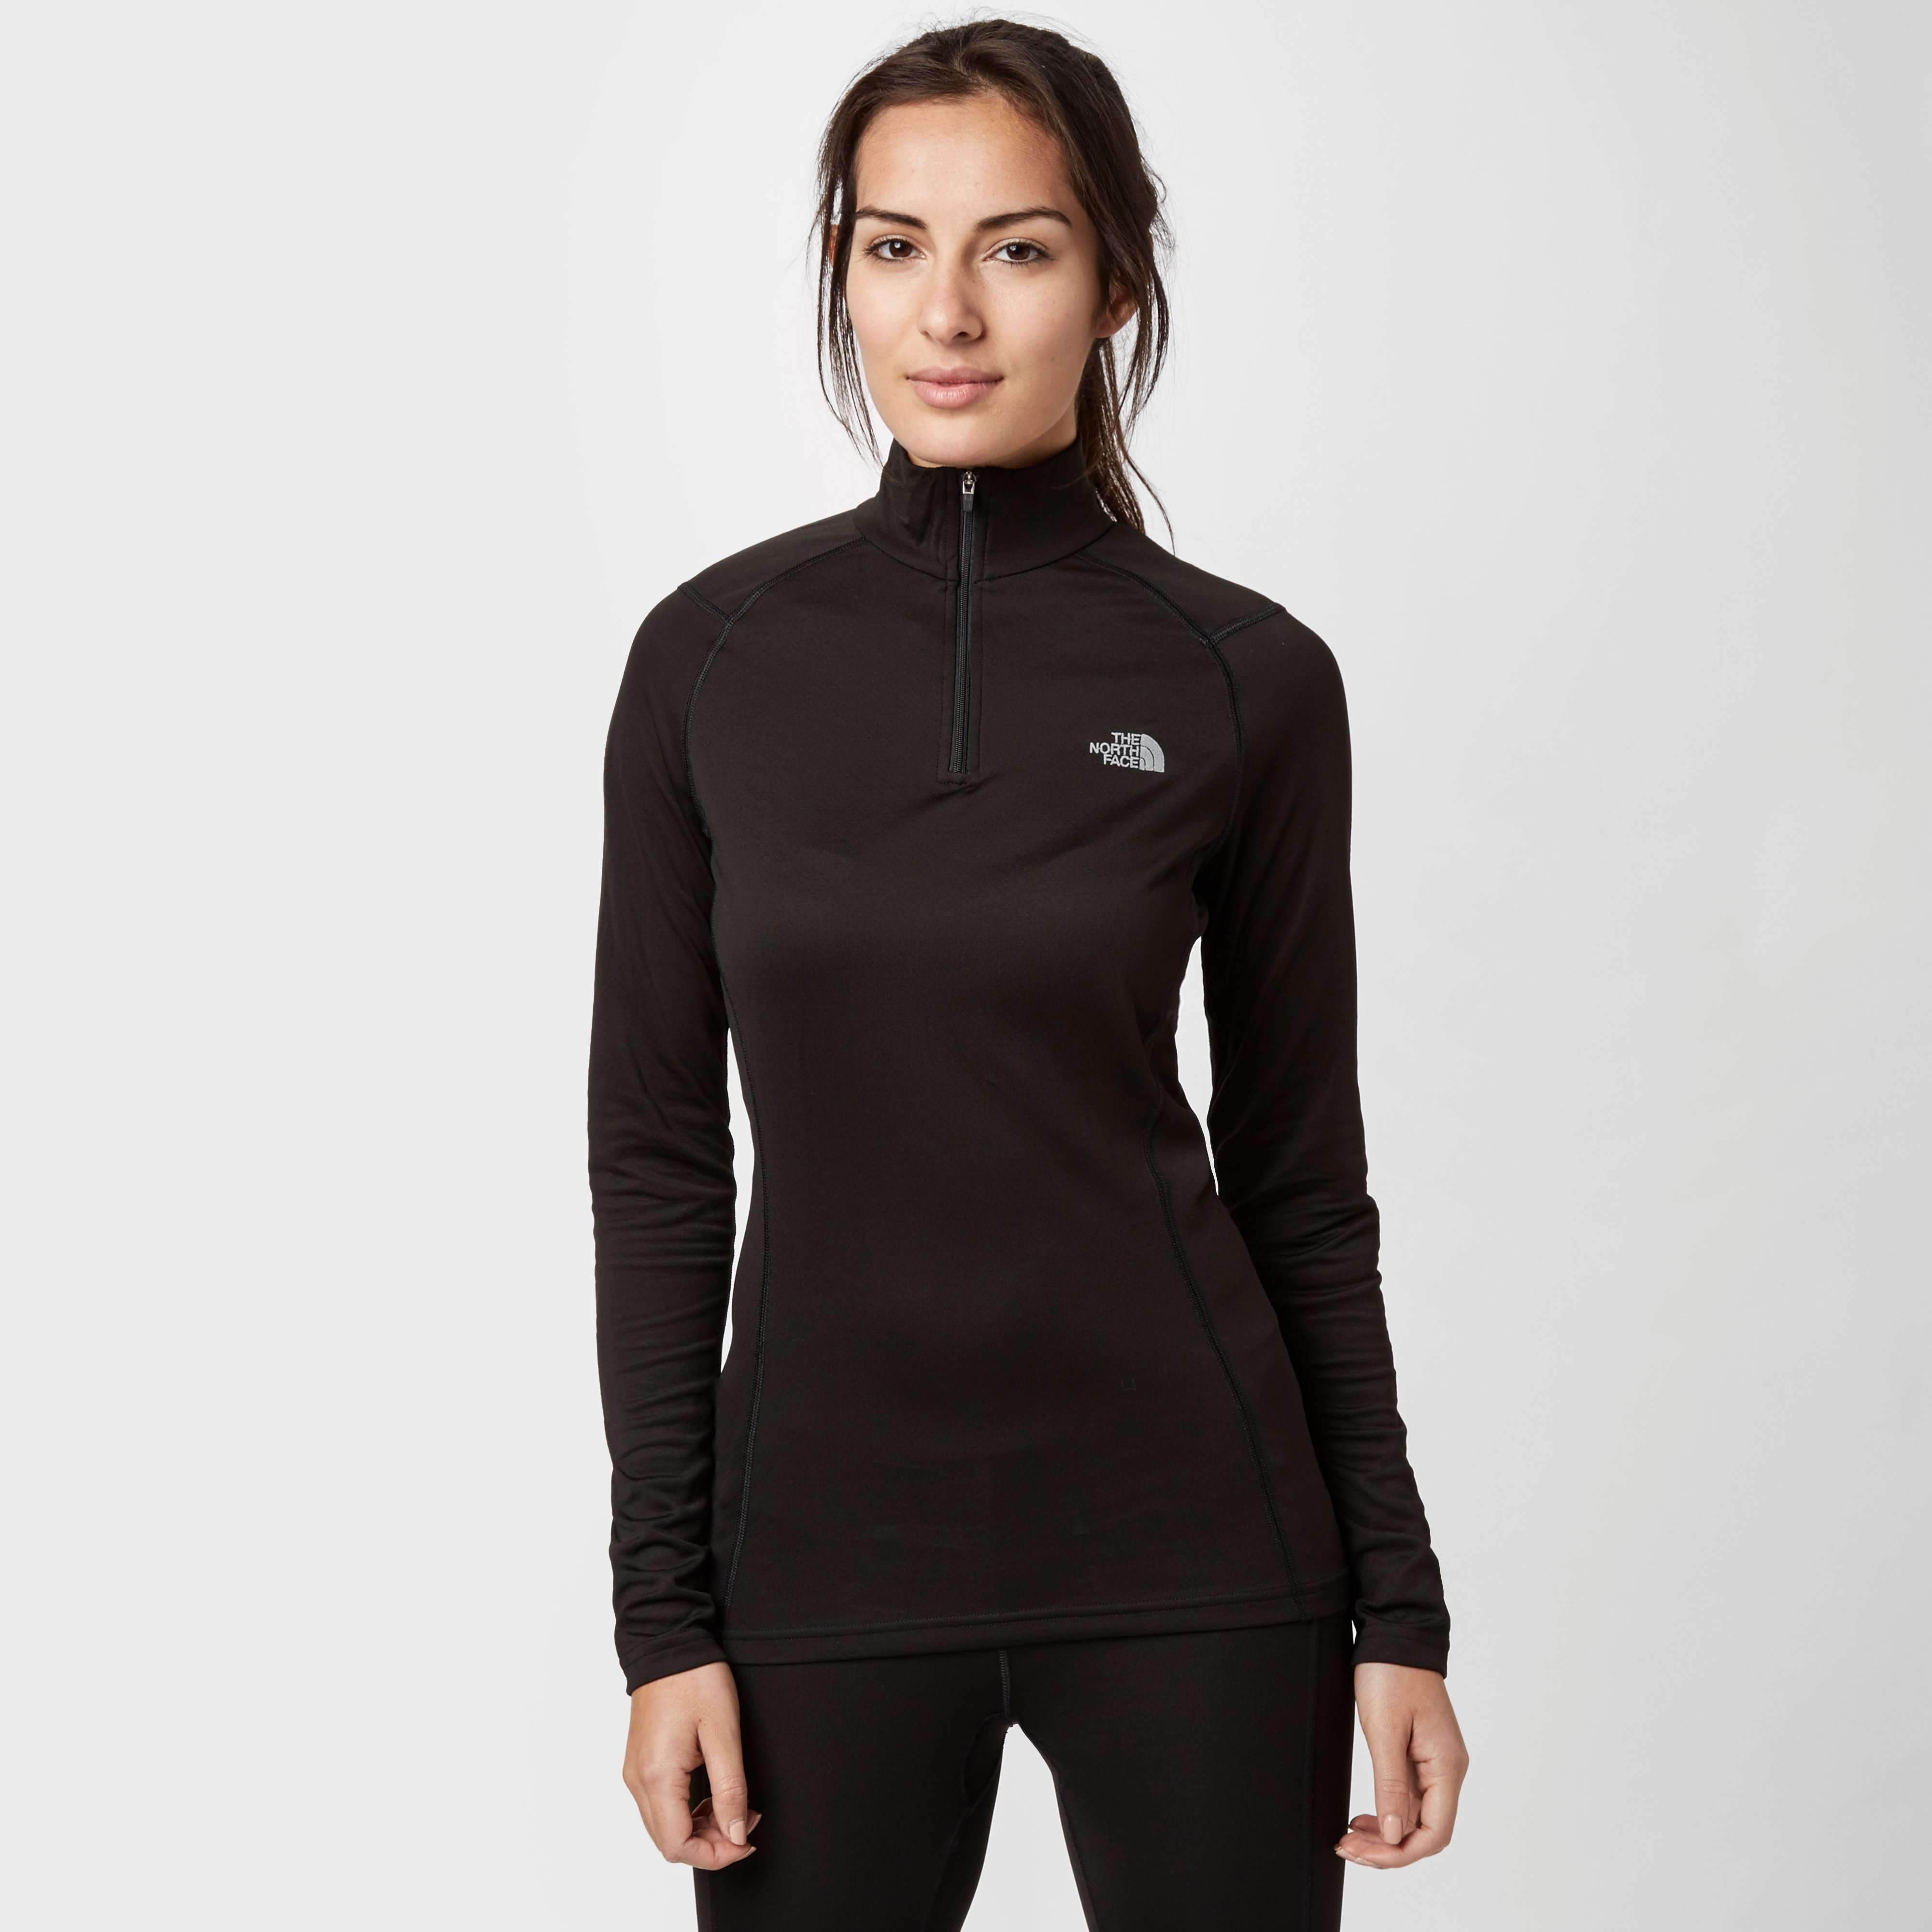 THE NORTH FACE Women's Warm Long Sleeve Zipped Neck Baselayer